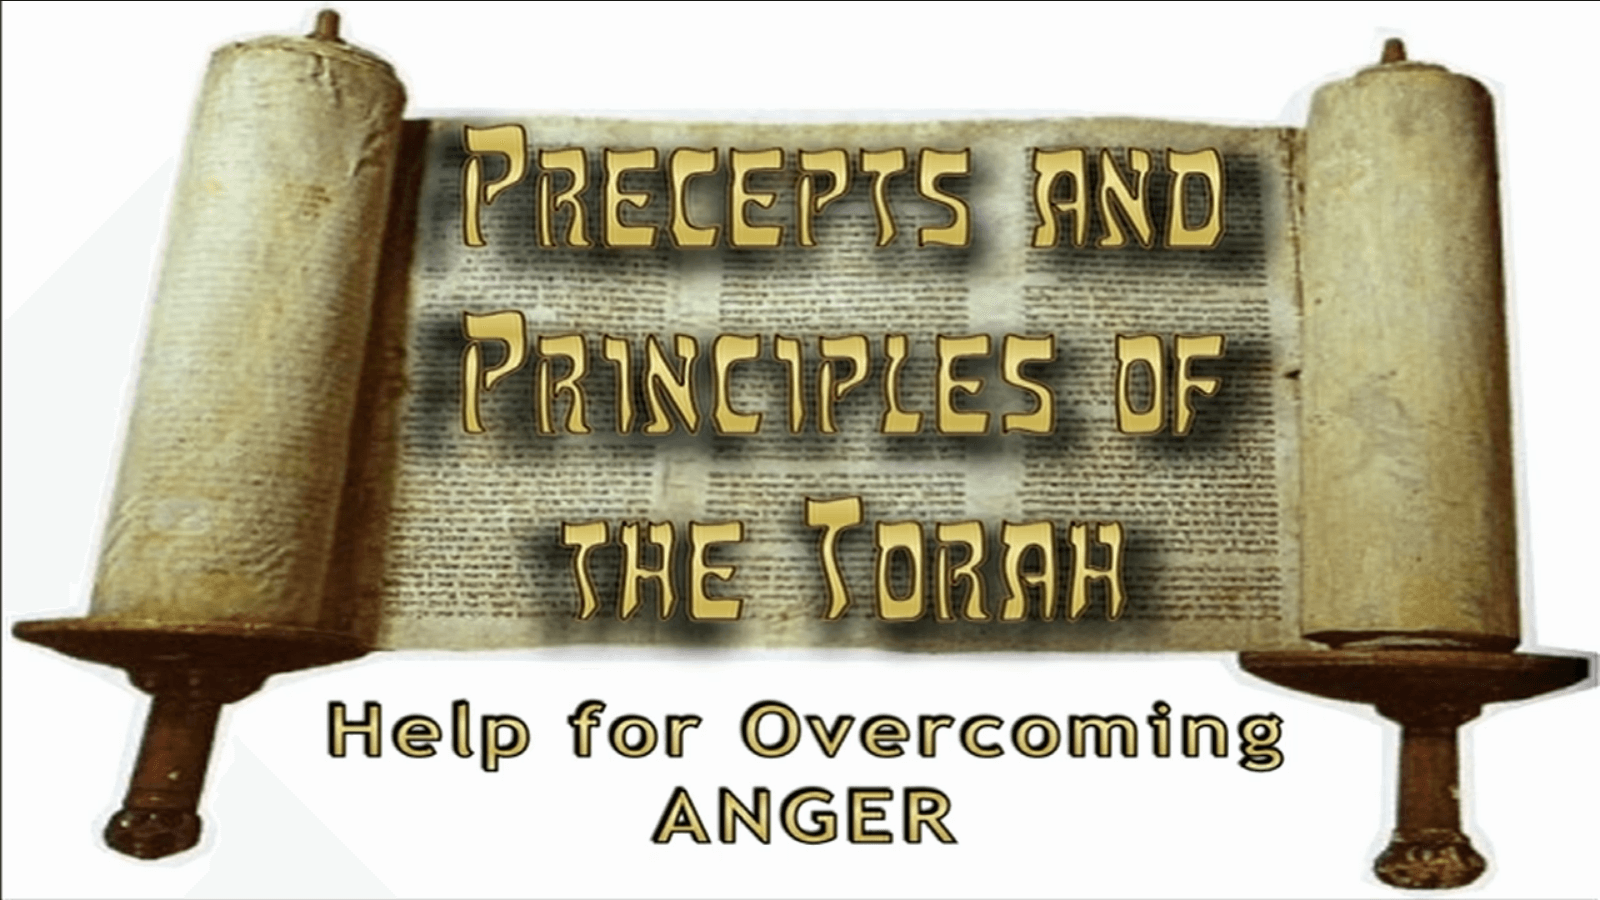 Precepts & Principles of the Torah - Help for Overcoming ANGER - Study